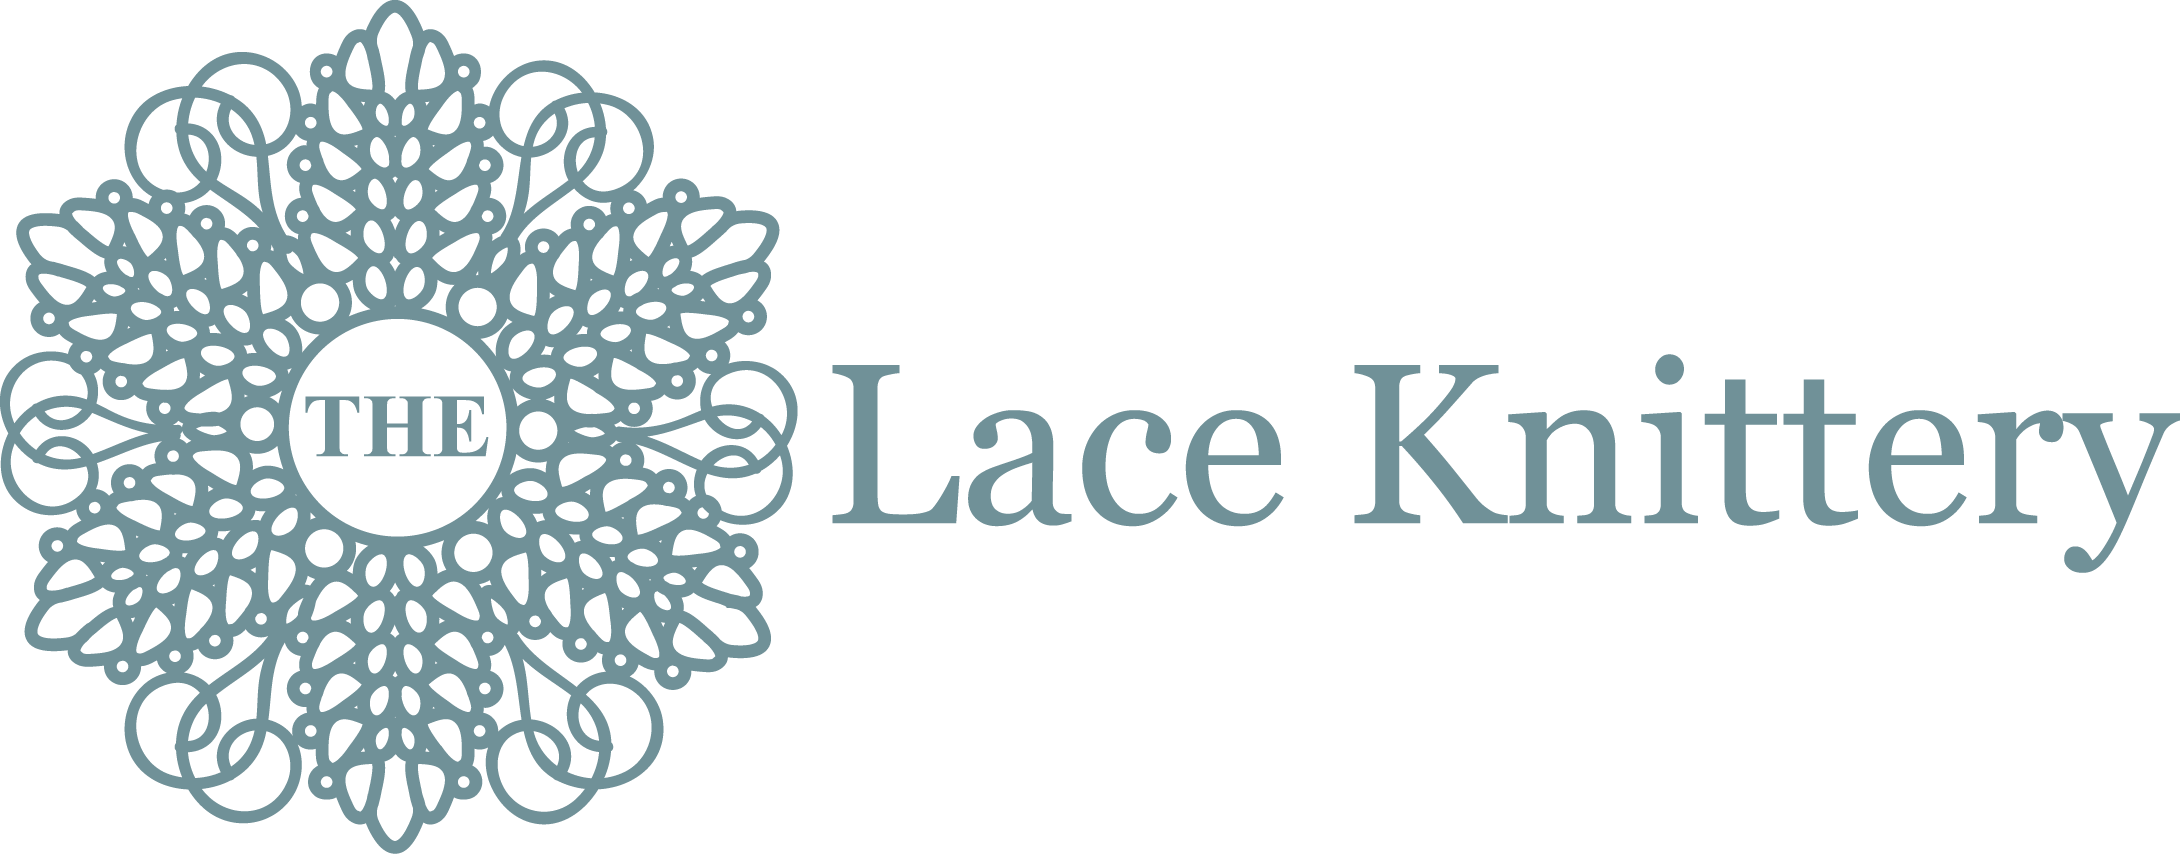 TheLaceKnittery1 - Welcome to The Lace Knittery